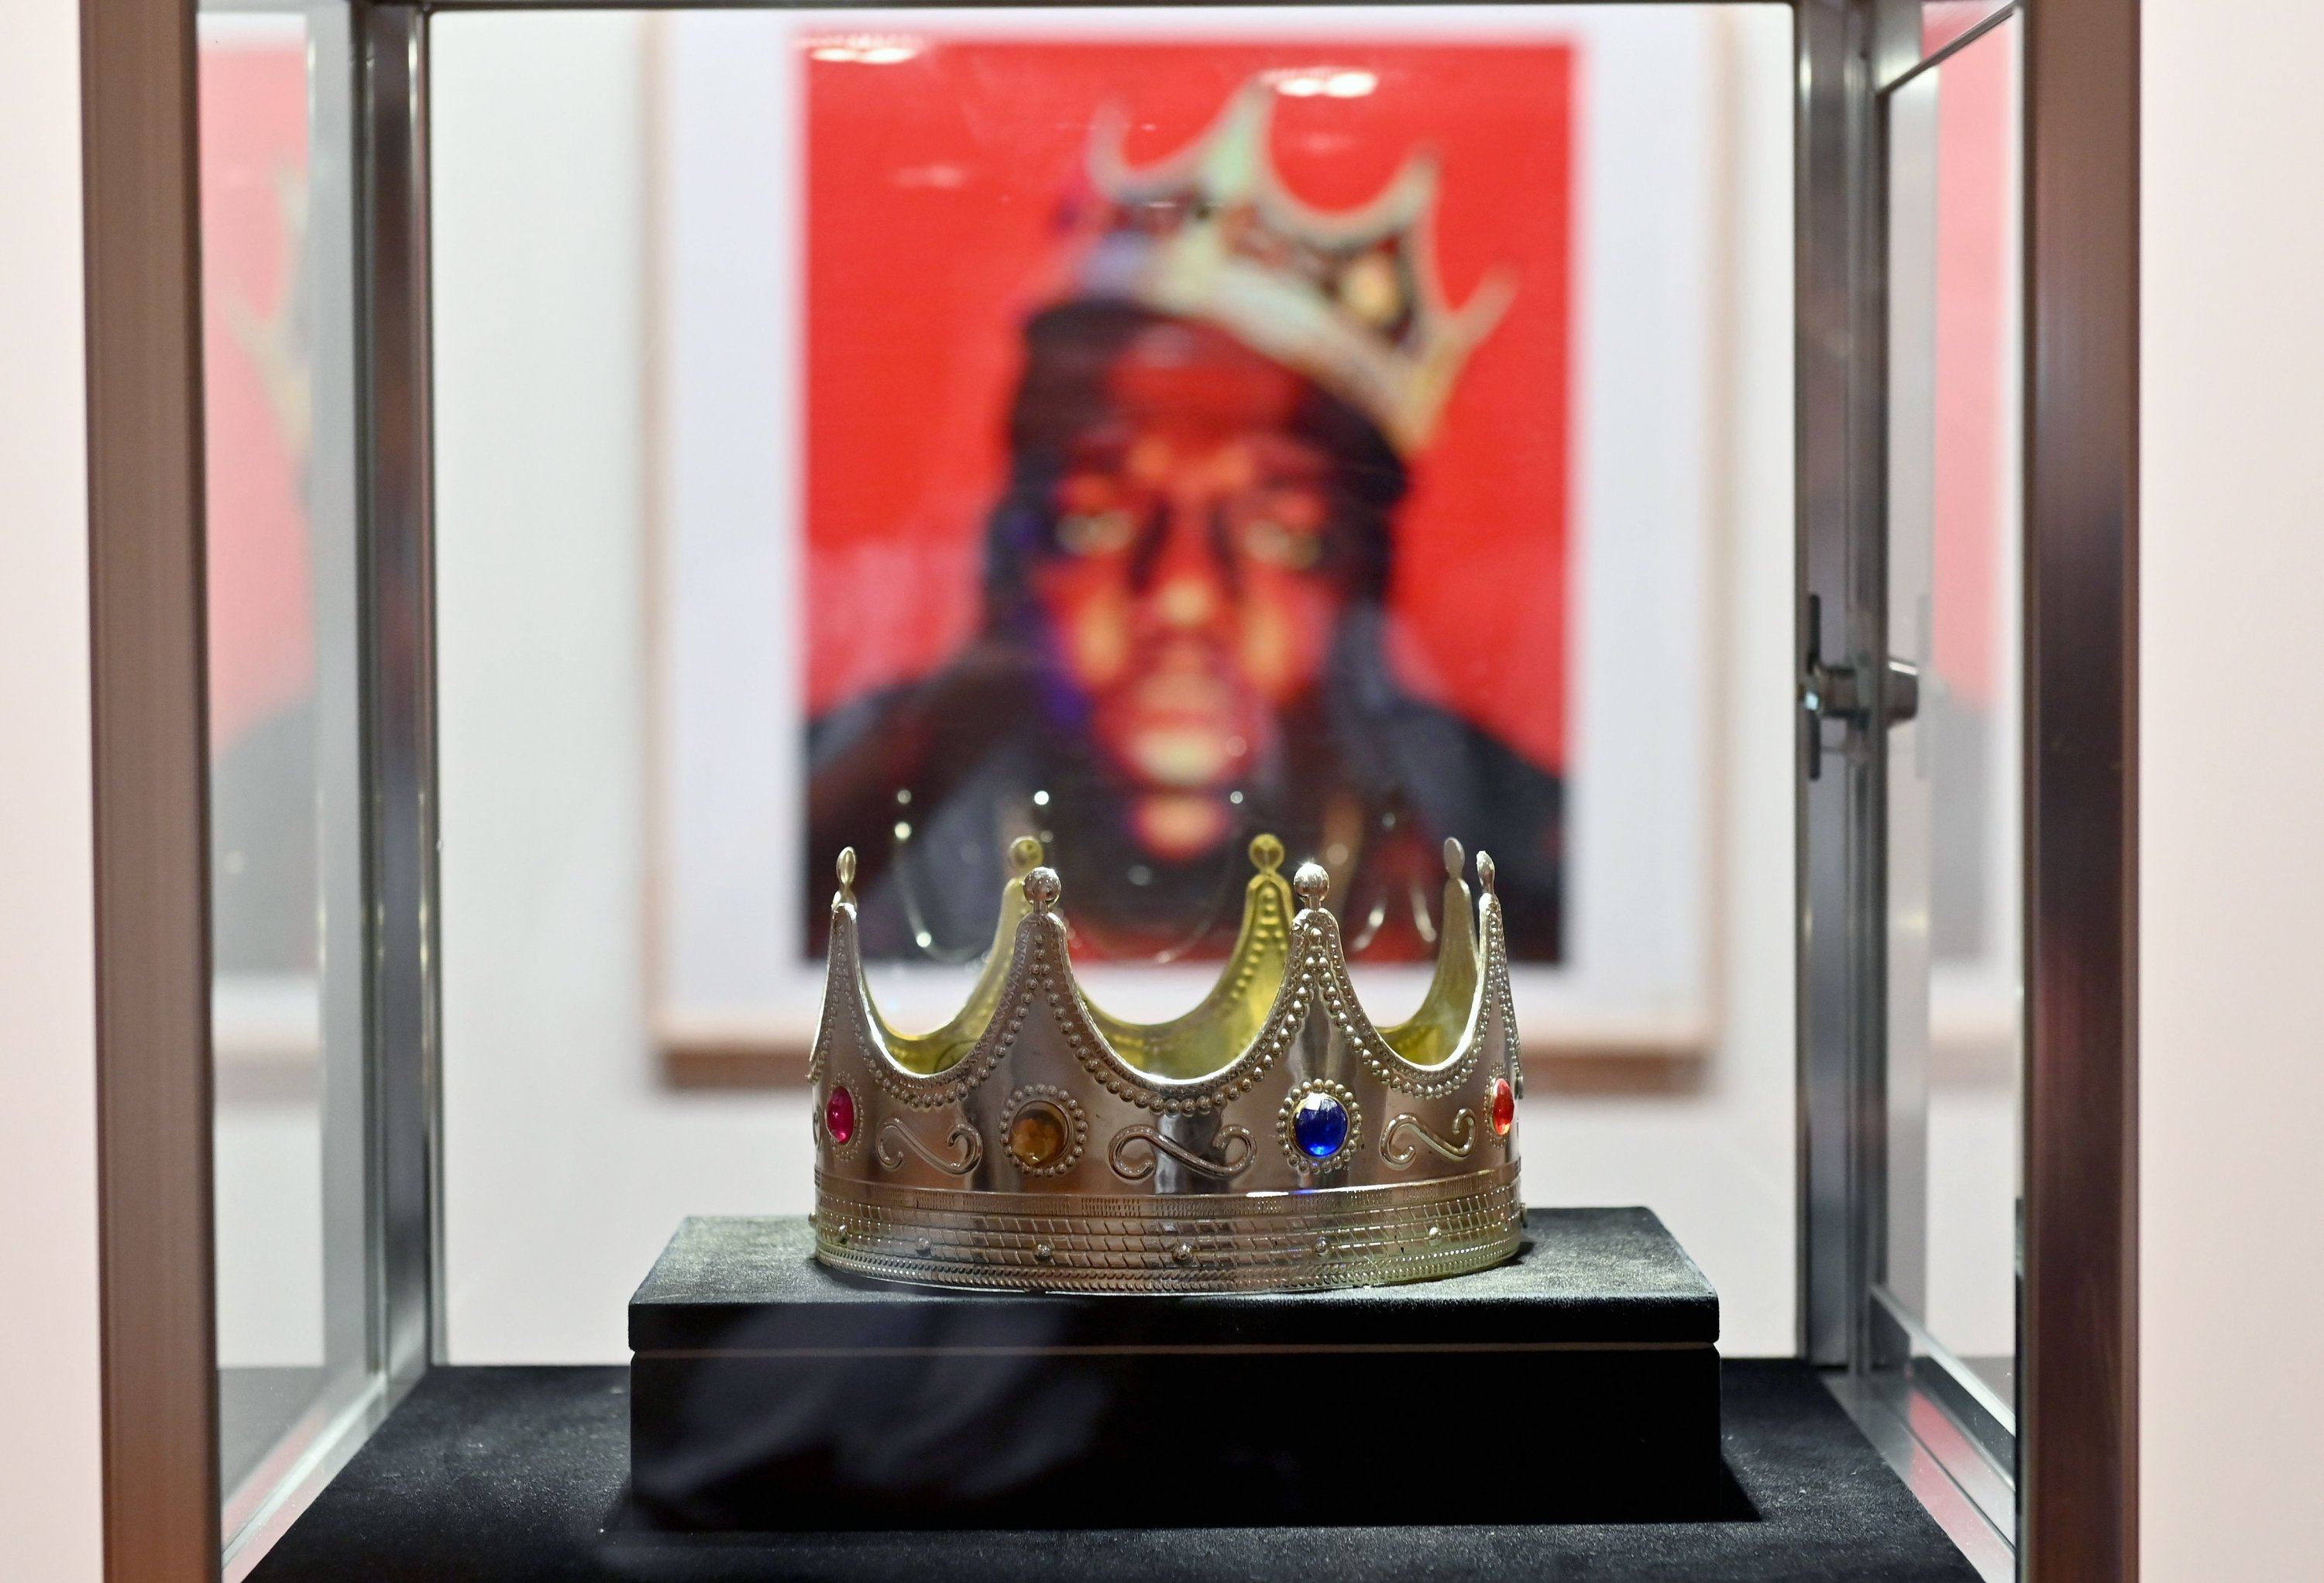 A close up of the crown worn by Notorious B.I.G., displayed during a press preview at Sotheby's for their inaugural HIP HOP Auction on Sept. 10, 2020 in New York City. (AFP PHOTO)